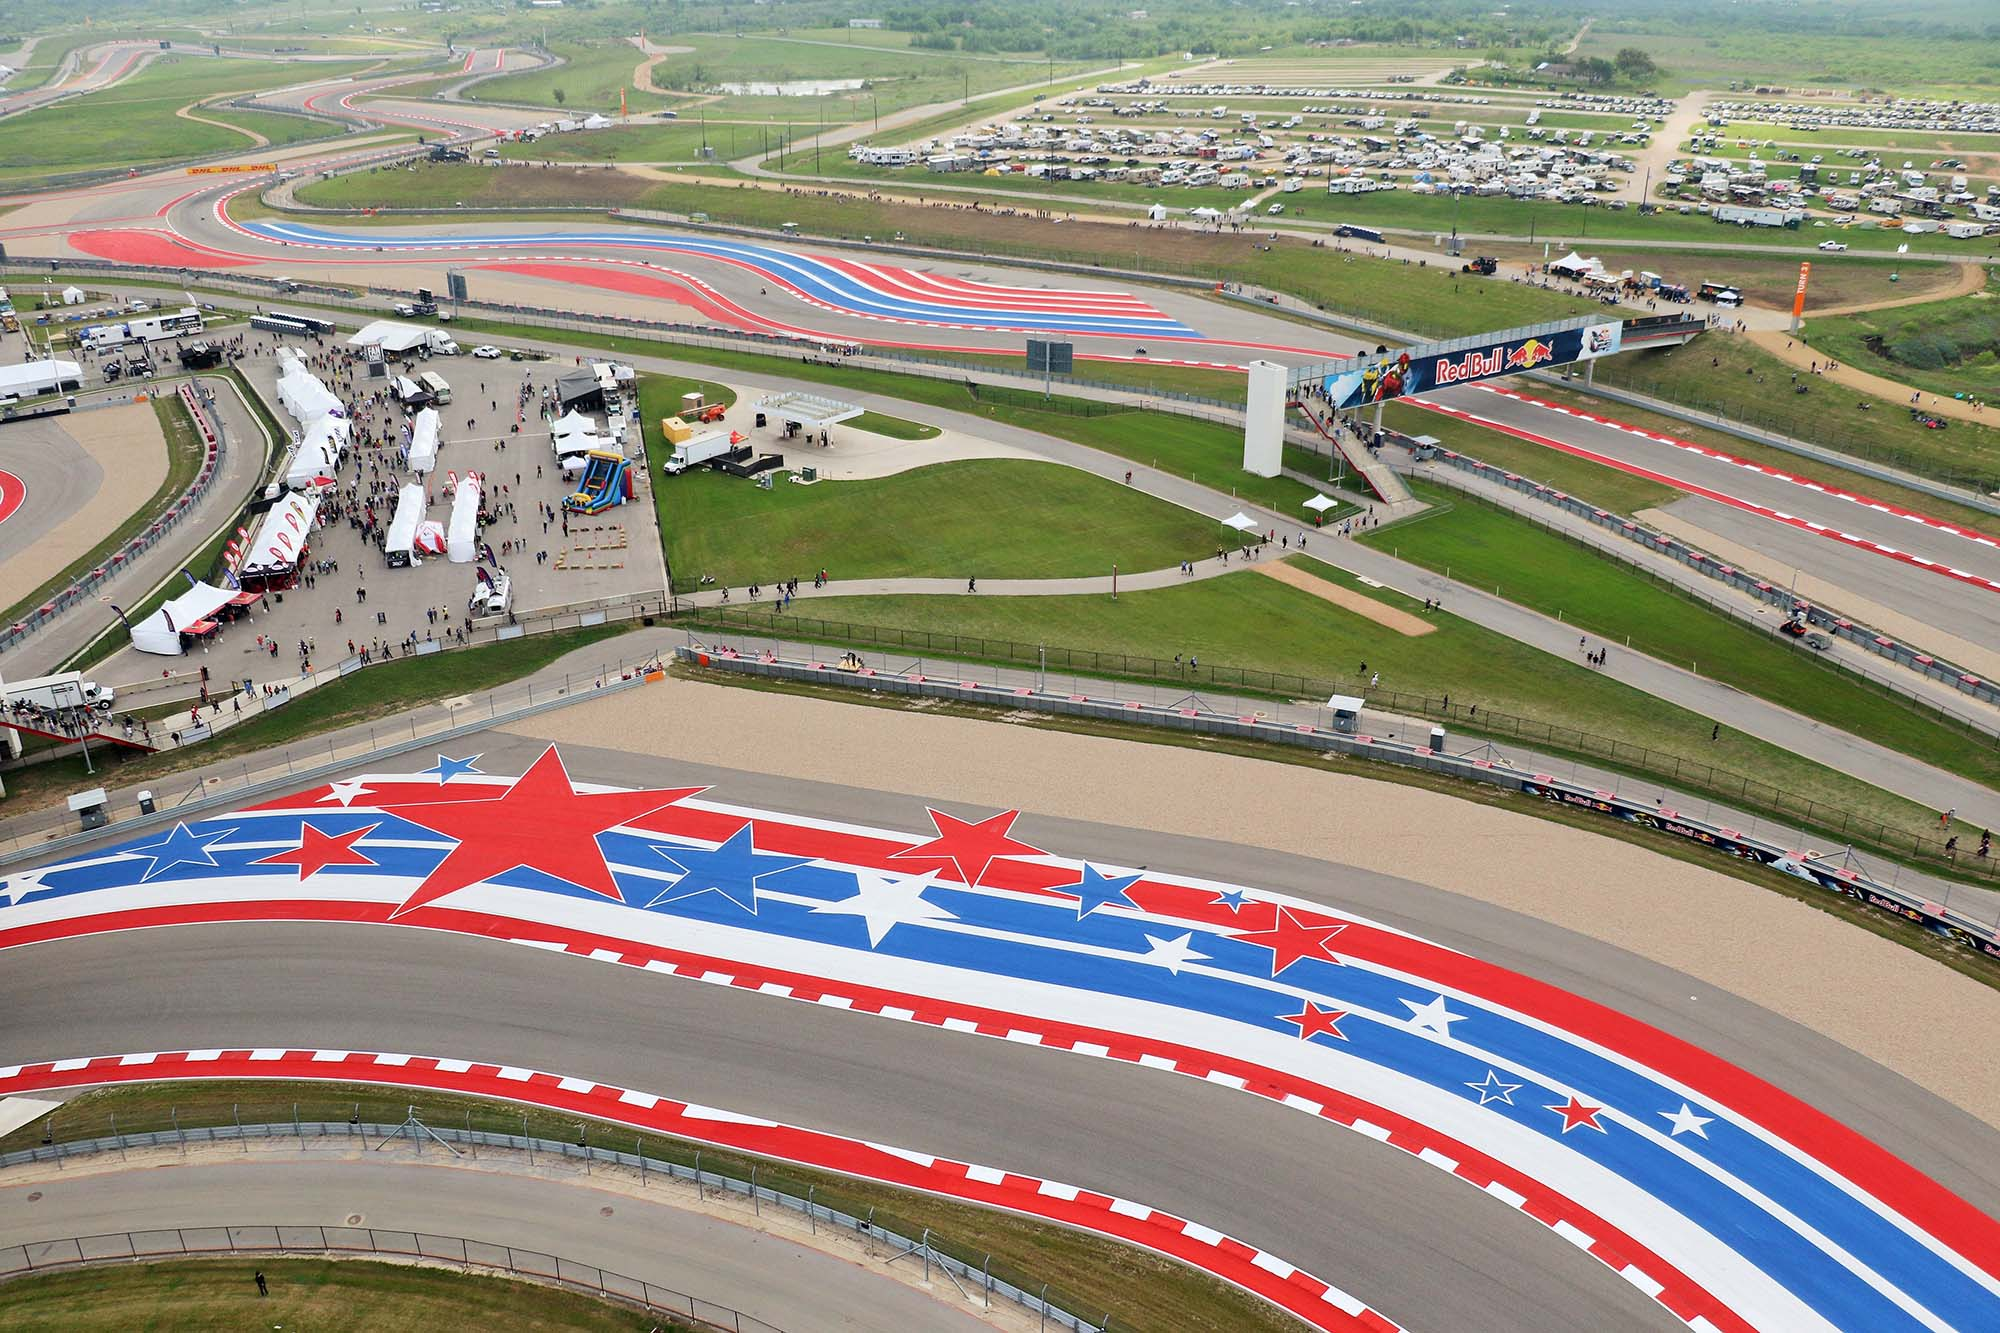 At MotoGP's Grand Prix of the Americas in Austin, Texas - Asphalt & Rubber